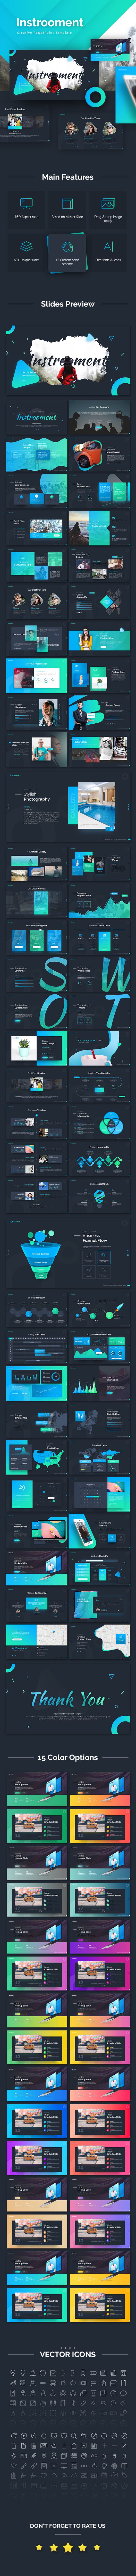 Instrooment Creative PowerPoint Template - Business PowerPoint Templates